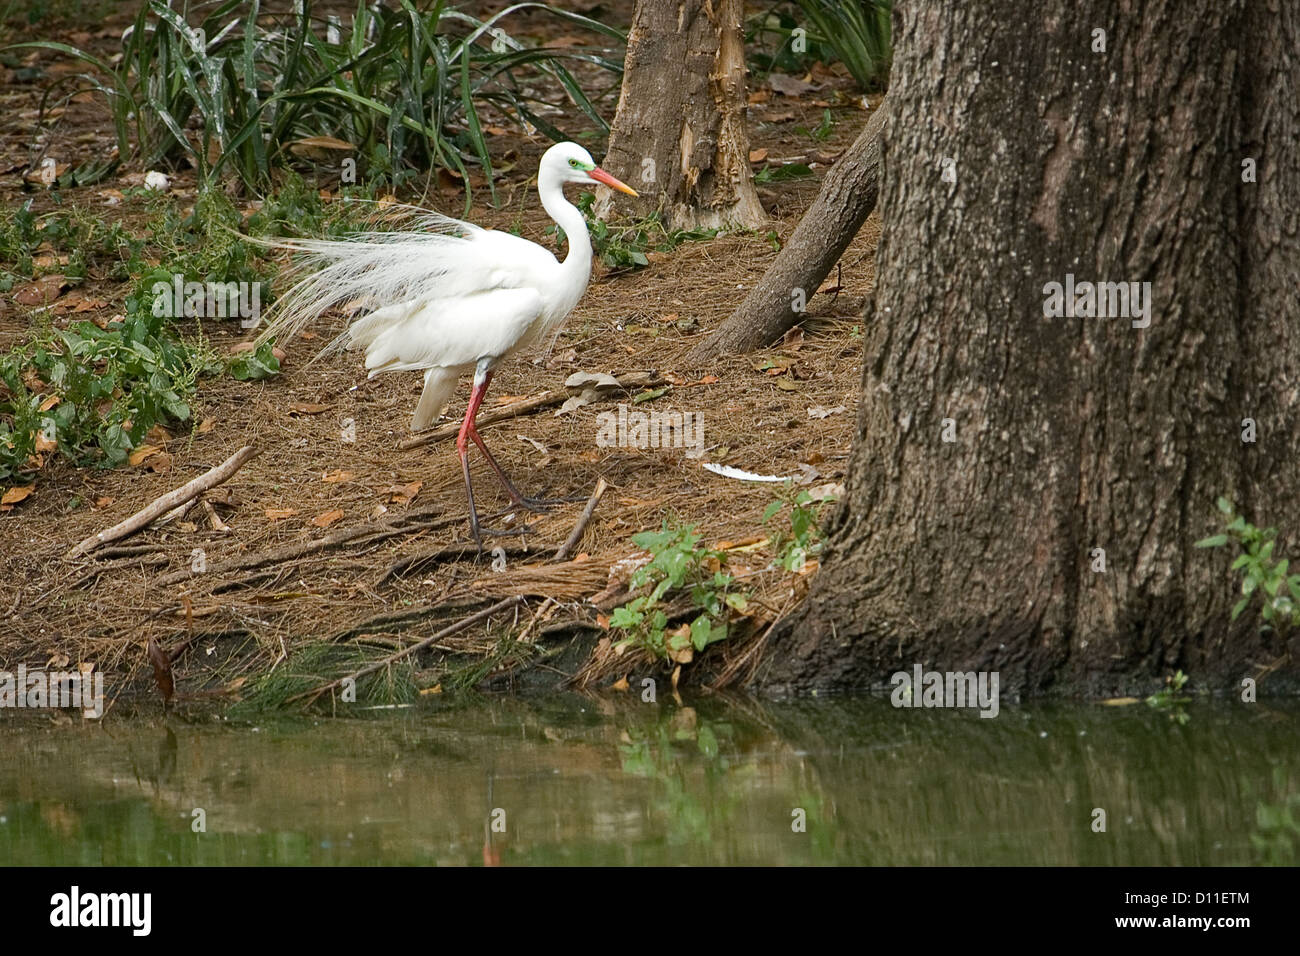 Great egret male - Ardea alba - with lacy white breeding plumage in woodland beside lake - Stock Image